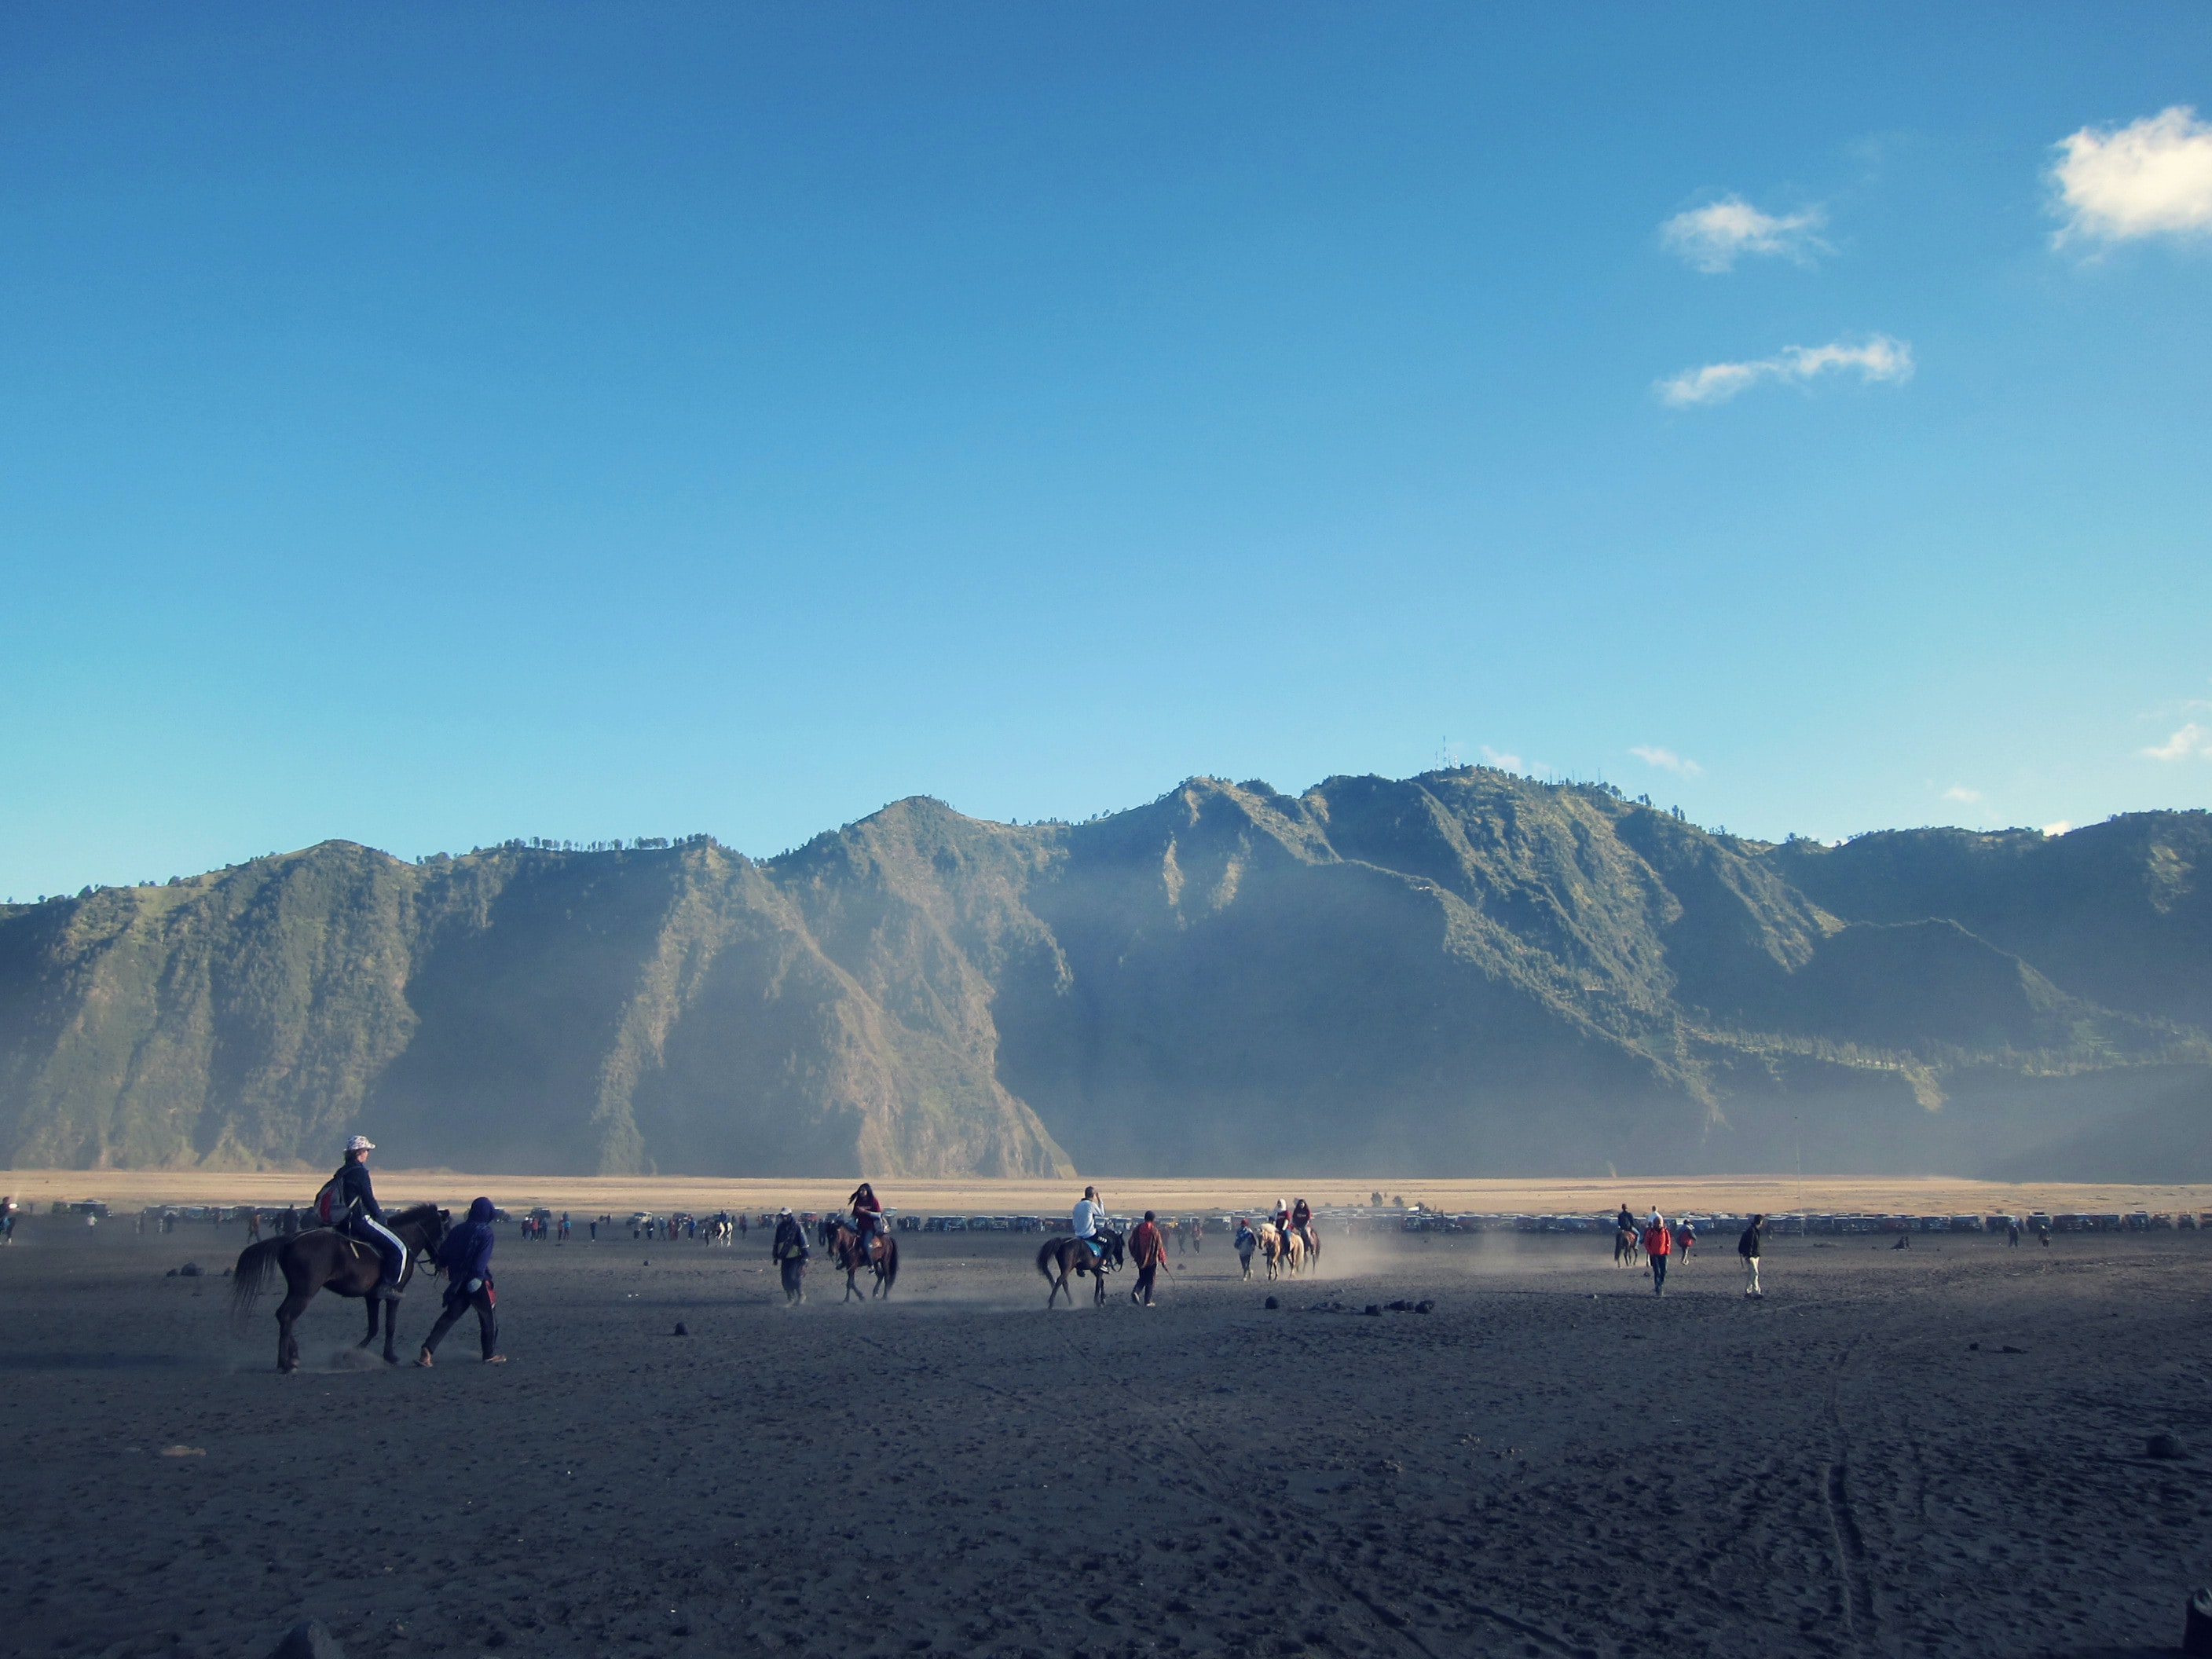 A plain at the foot of a mountain range with people on horseback and on foot